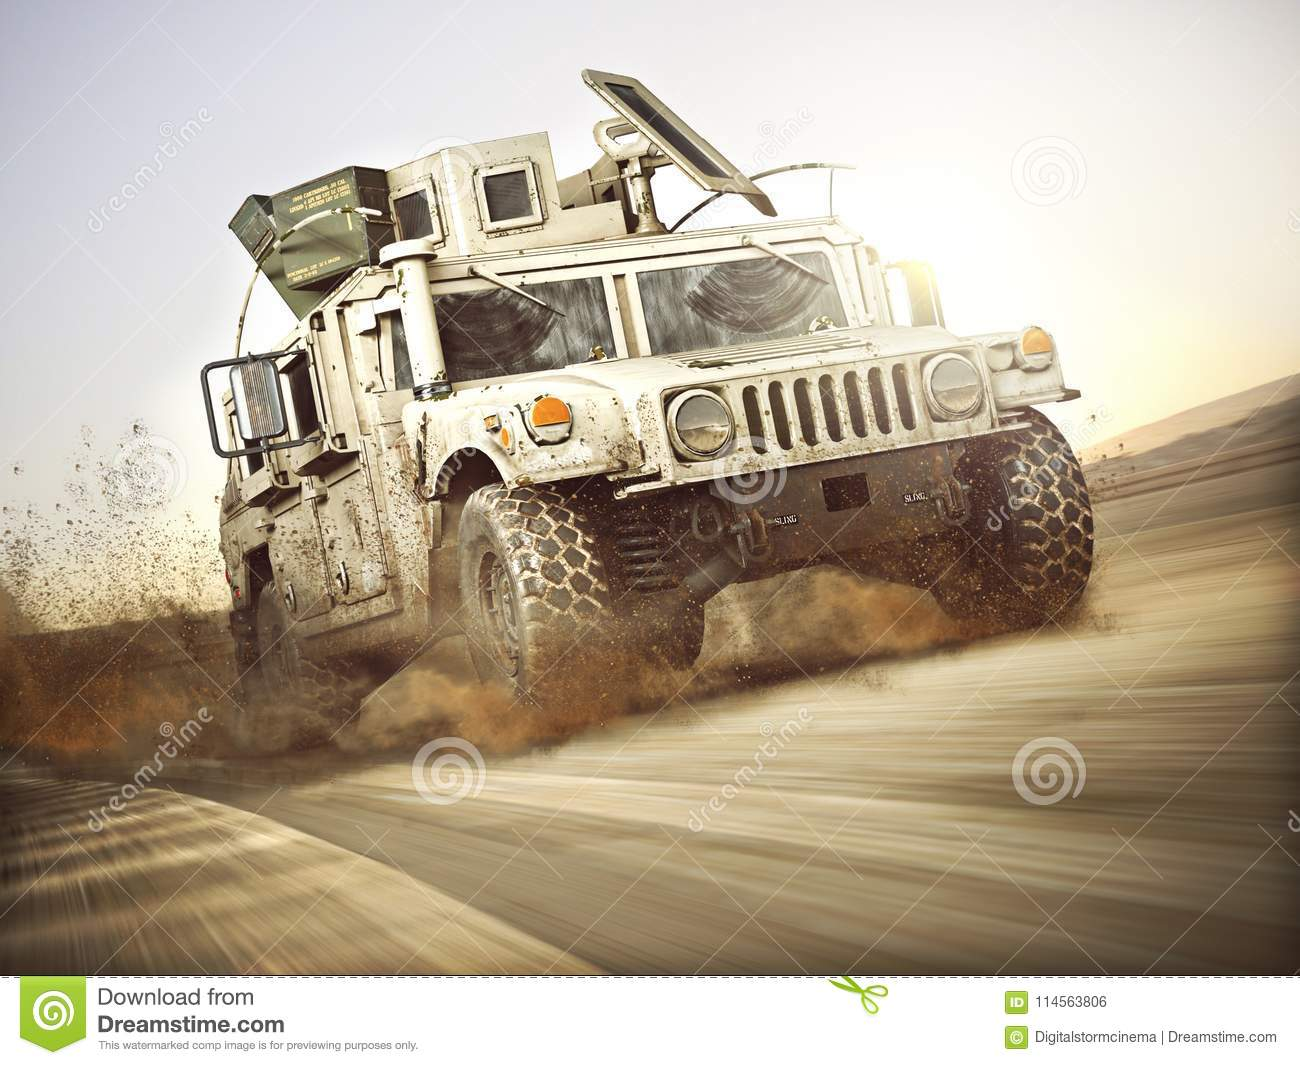 Military armored vehicle moving at a high rate of speed with motion blur over sand. Generic